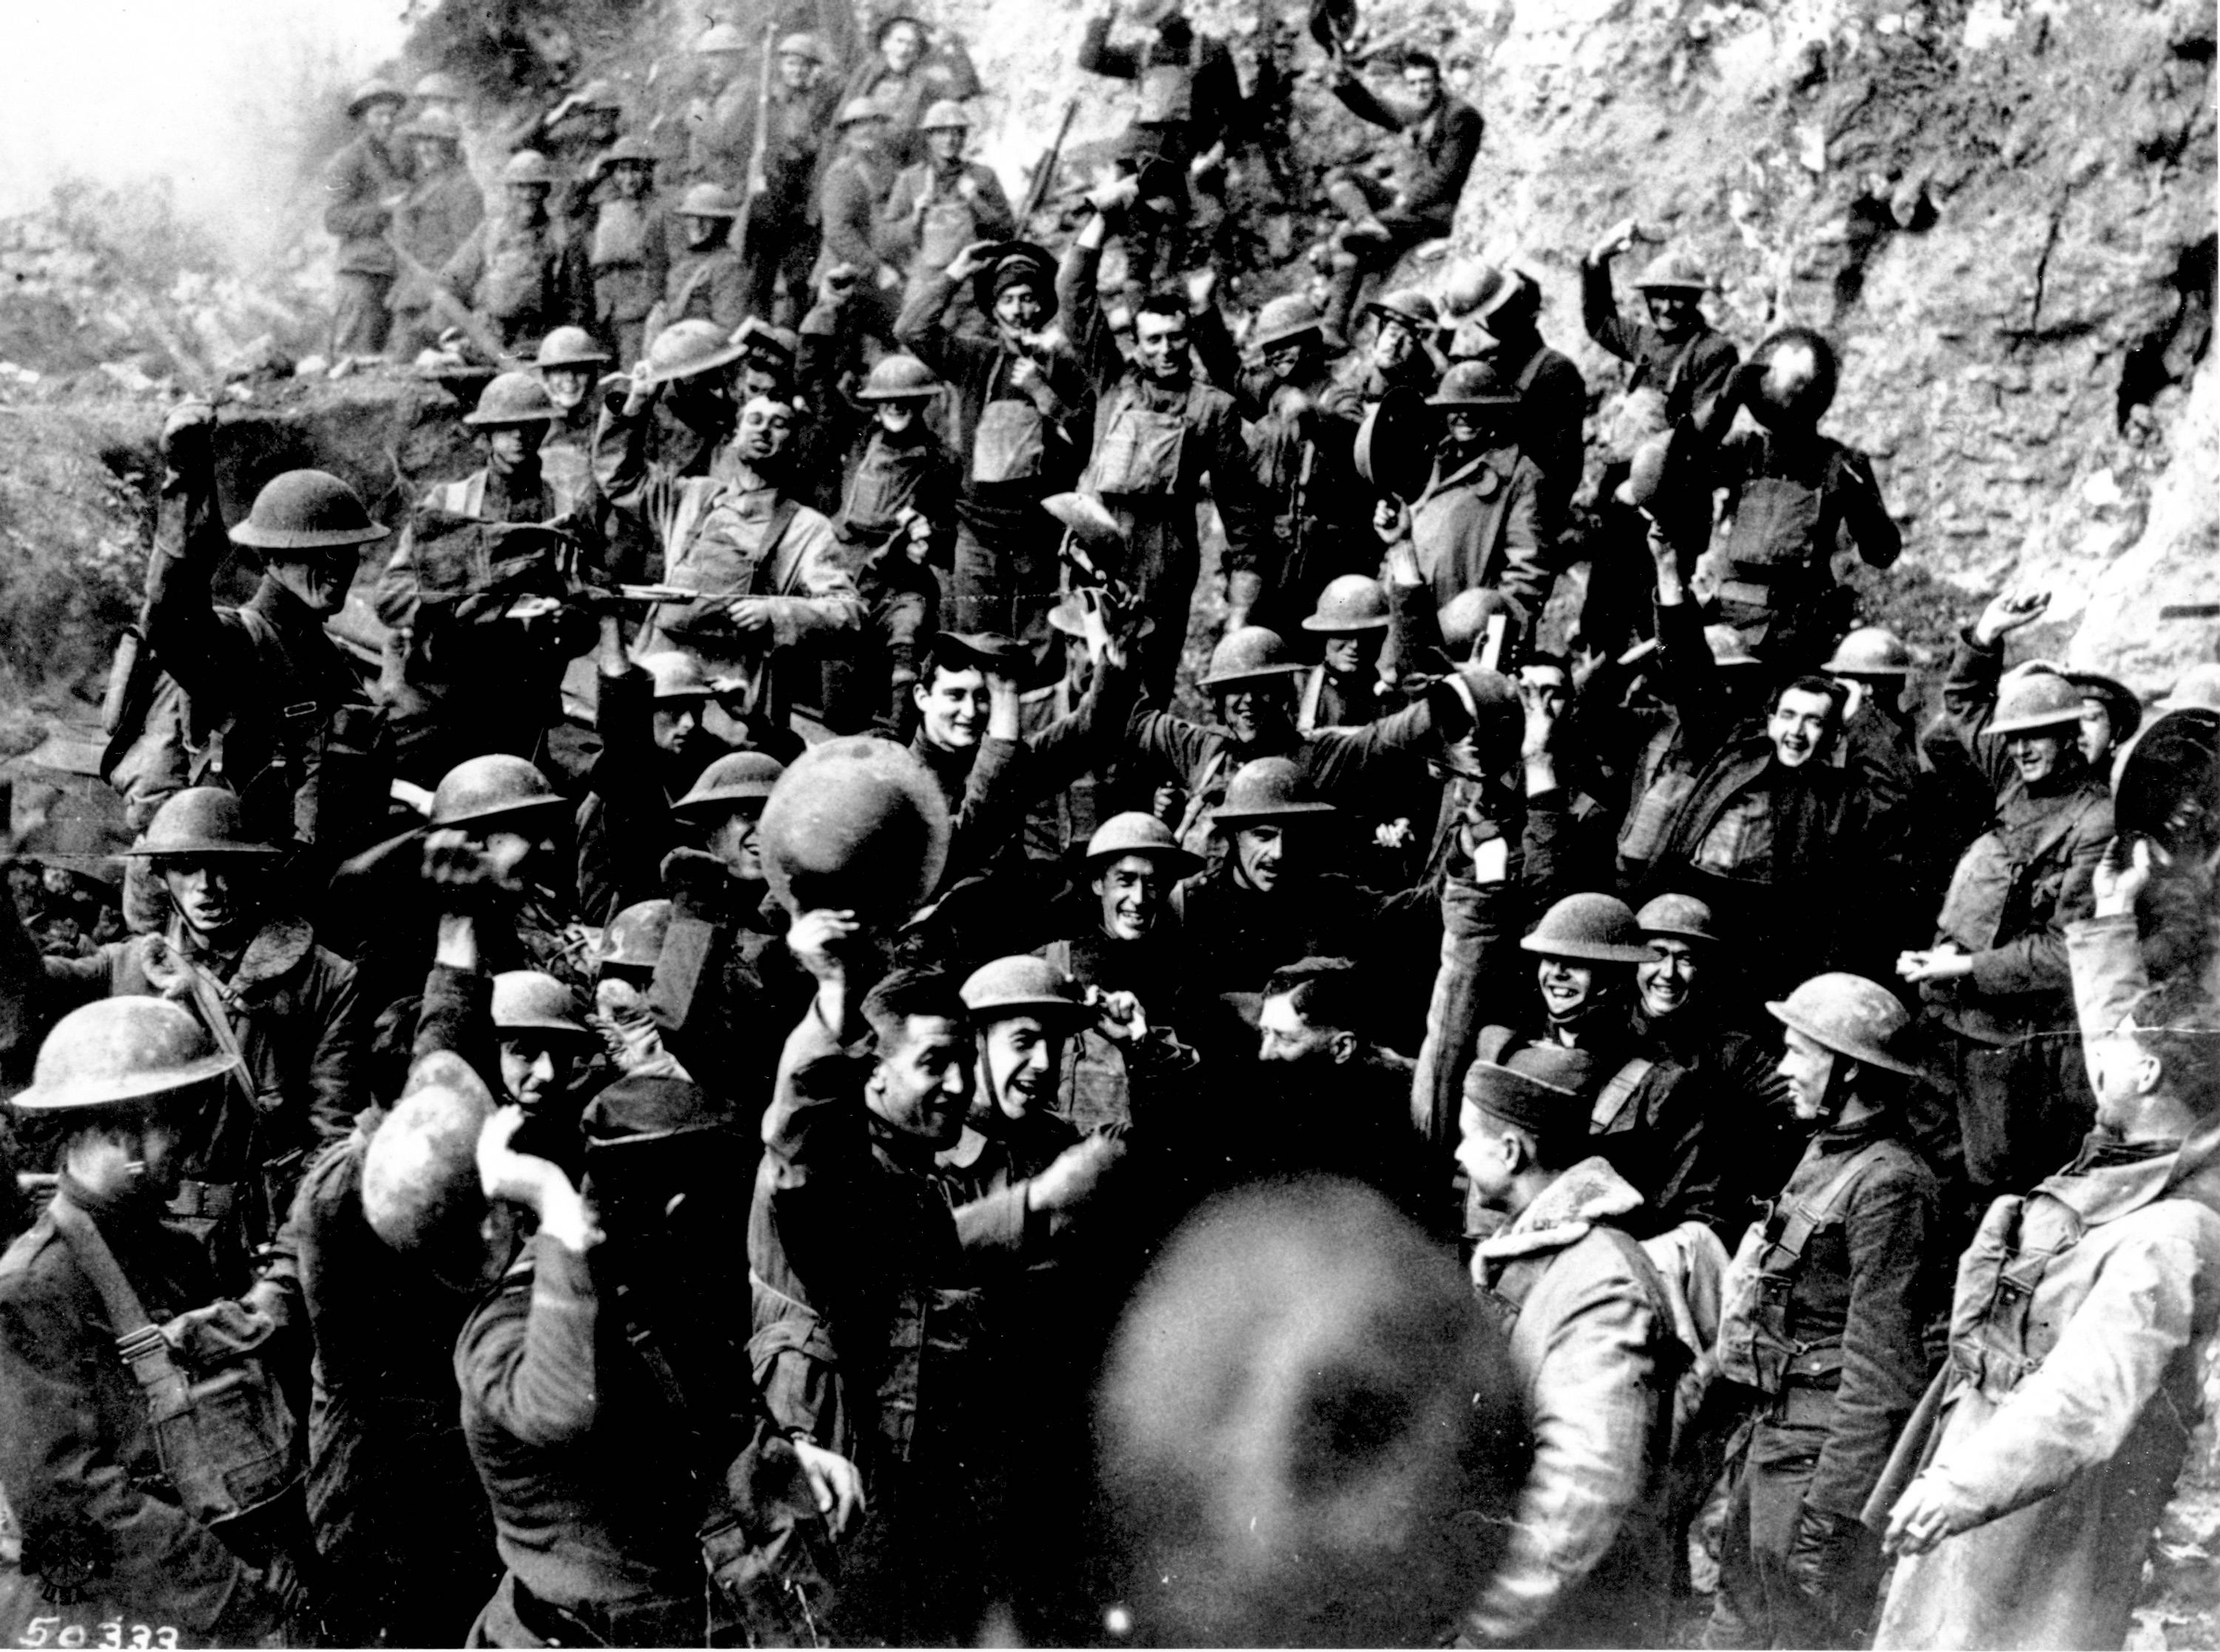 100 OF 100: In this 1918 file photo, American troops, near St. Mihiel, France, cheer after hearing the news that the Armistice has been signed, ending World War I.